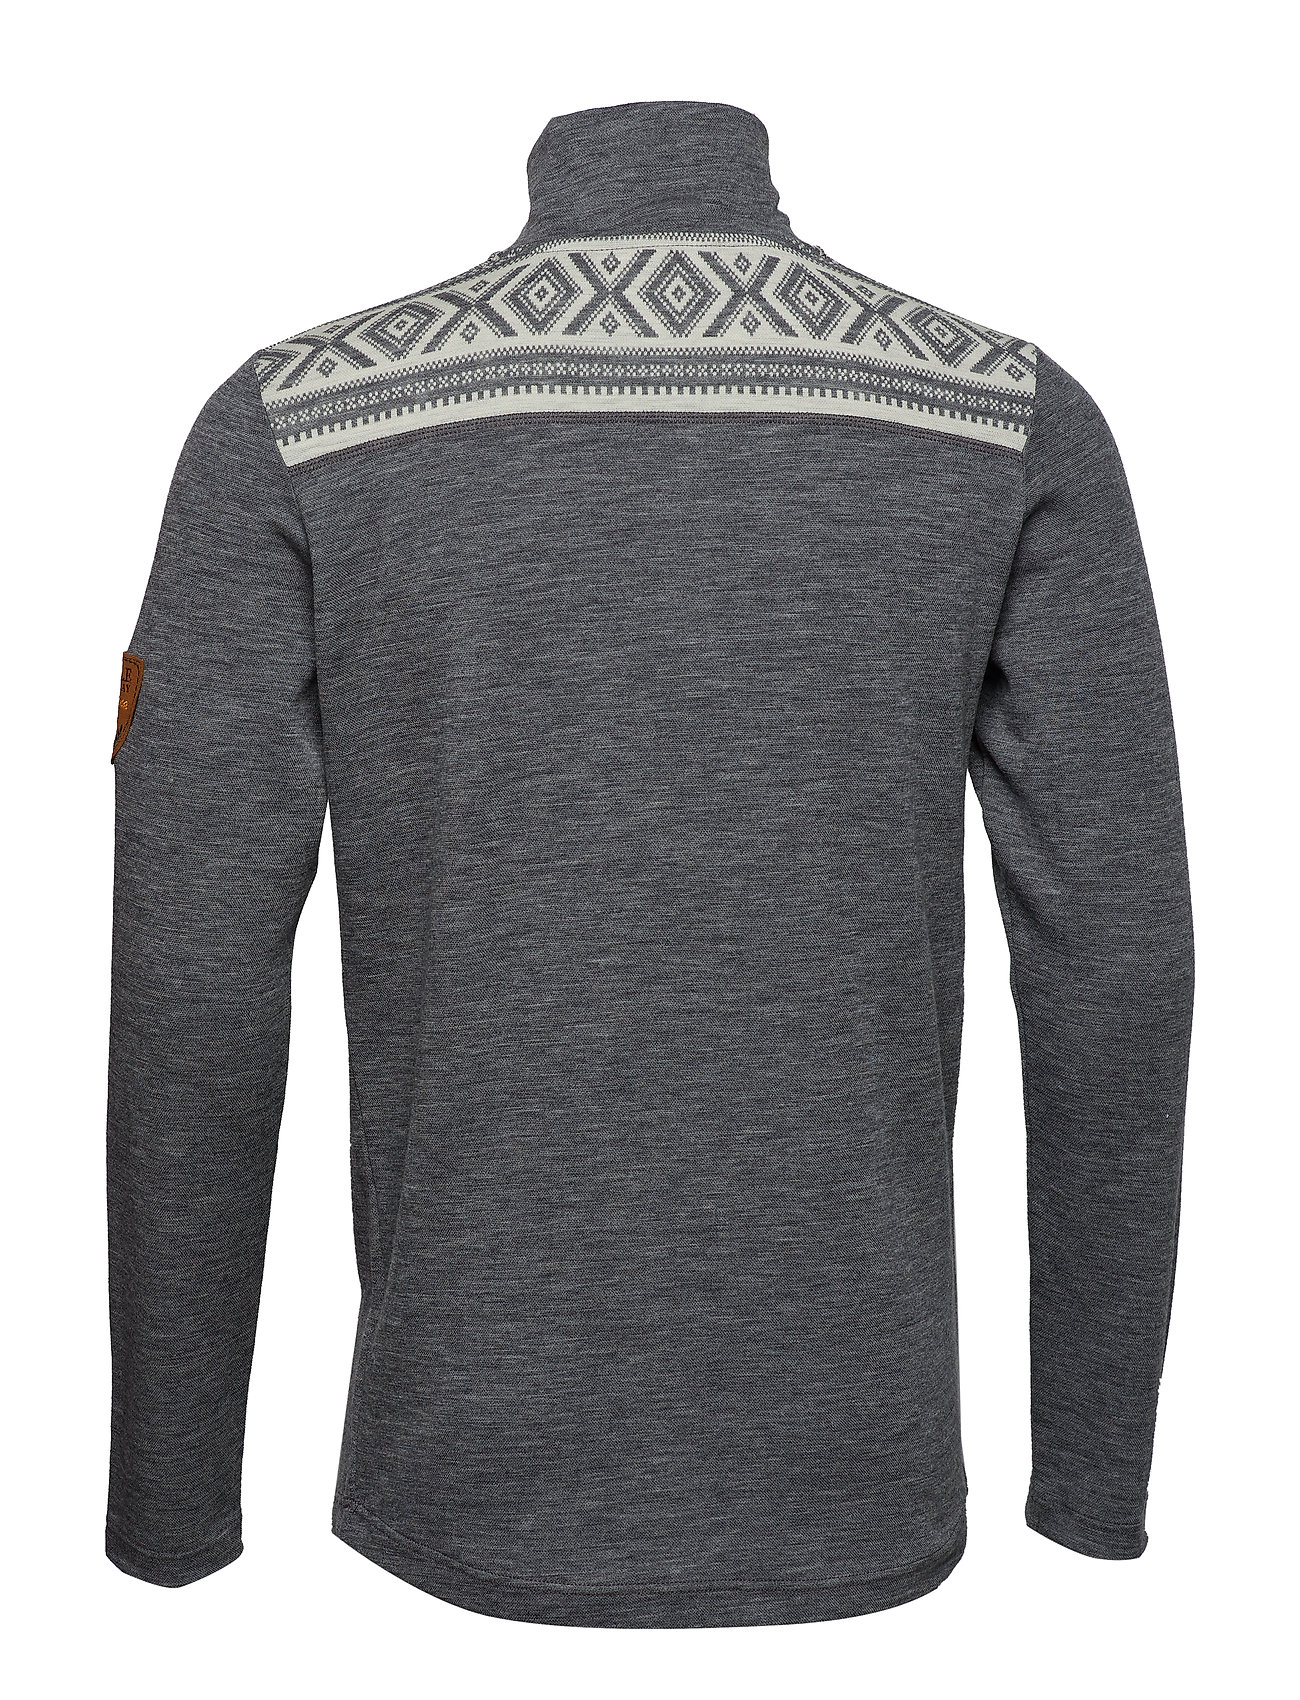 Of blackDale Basic Masculine Sweatersmoke Cortina Norway vbf6gY7y